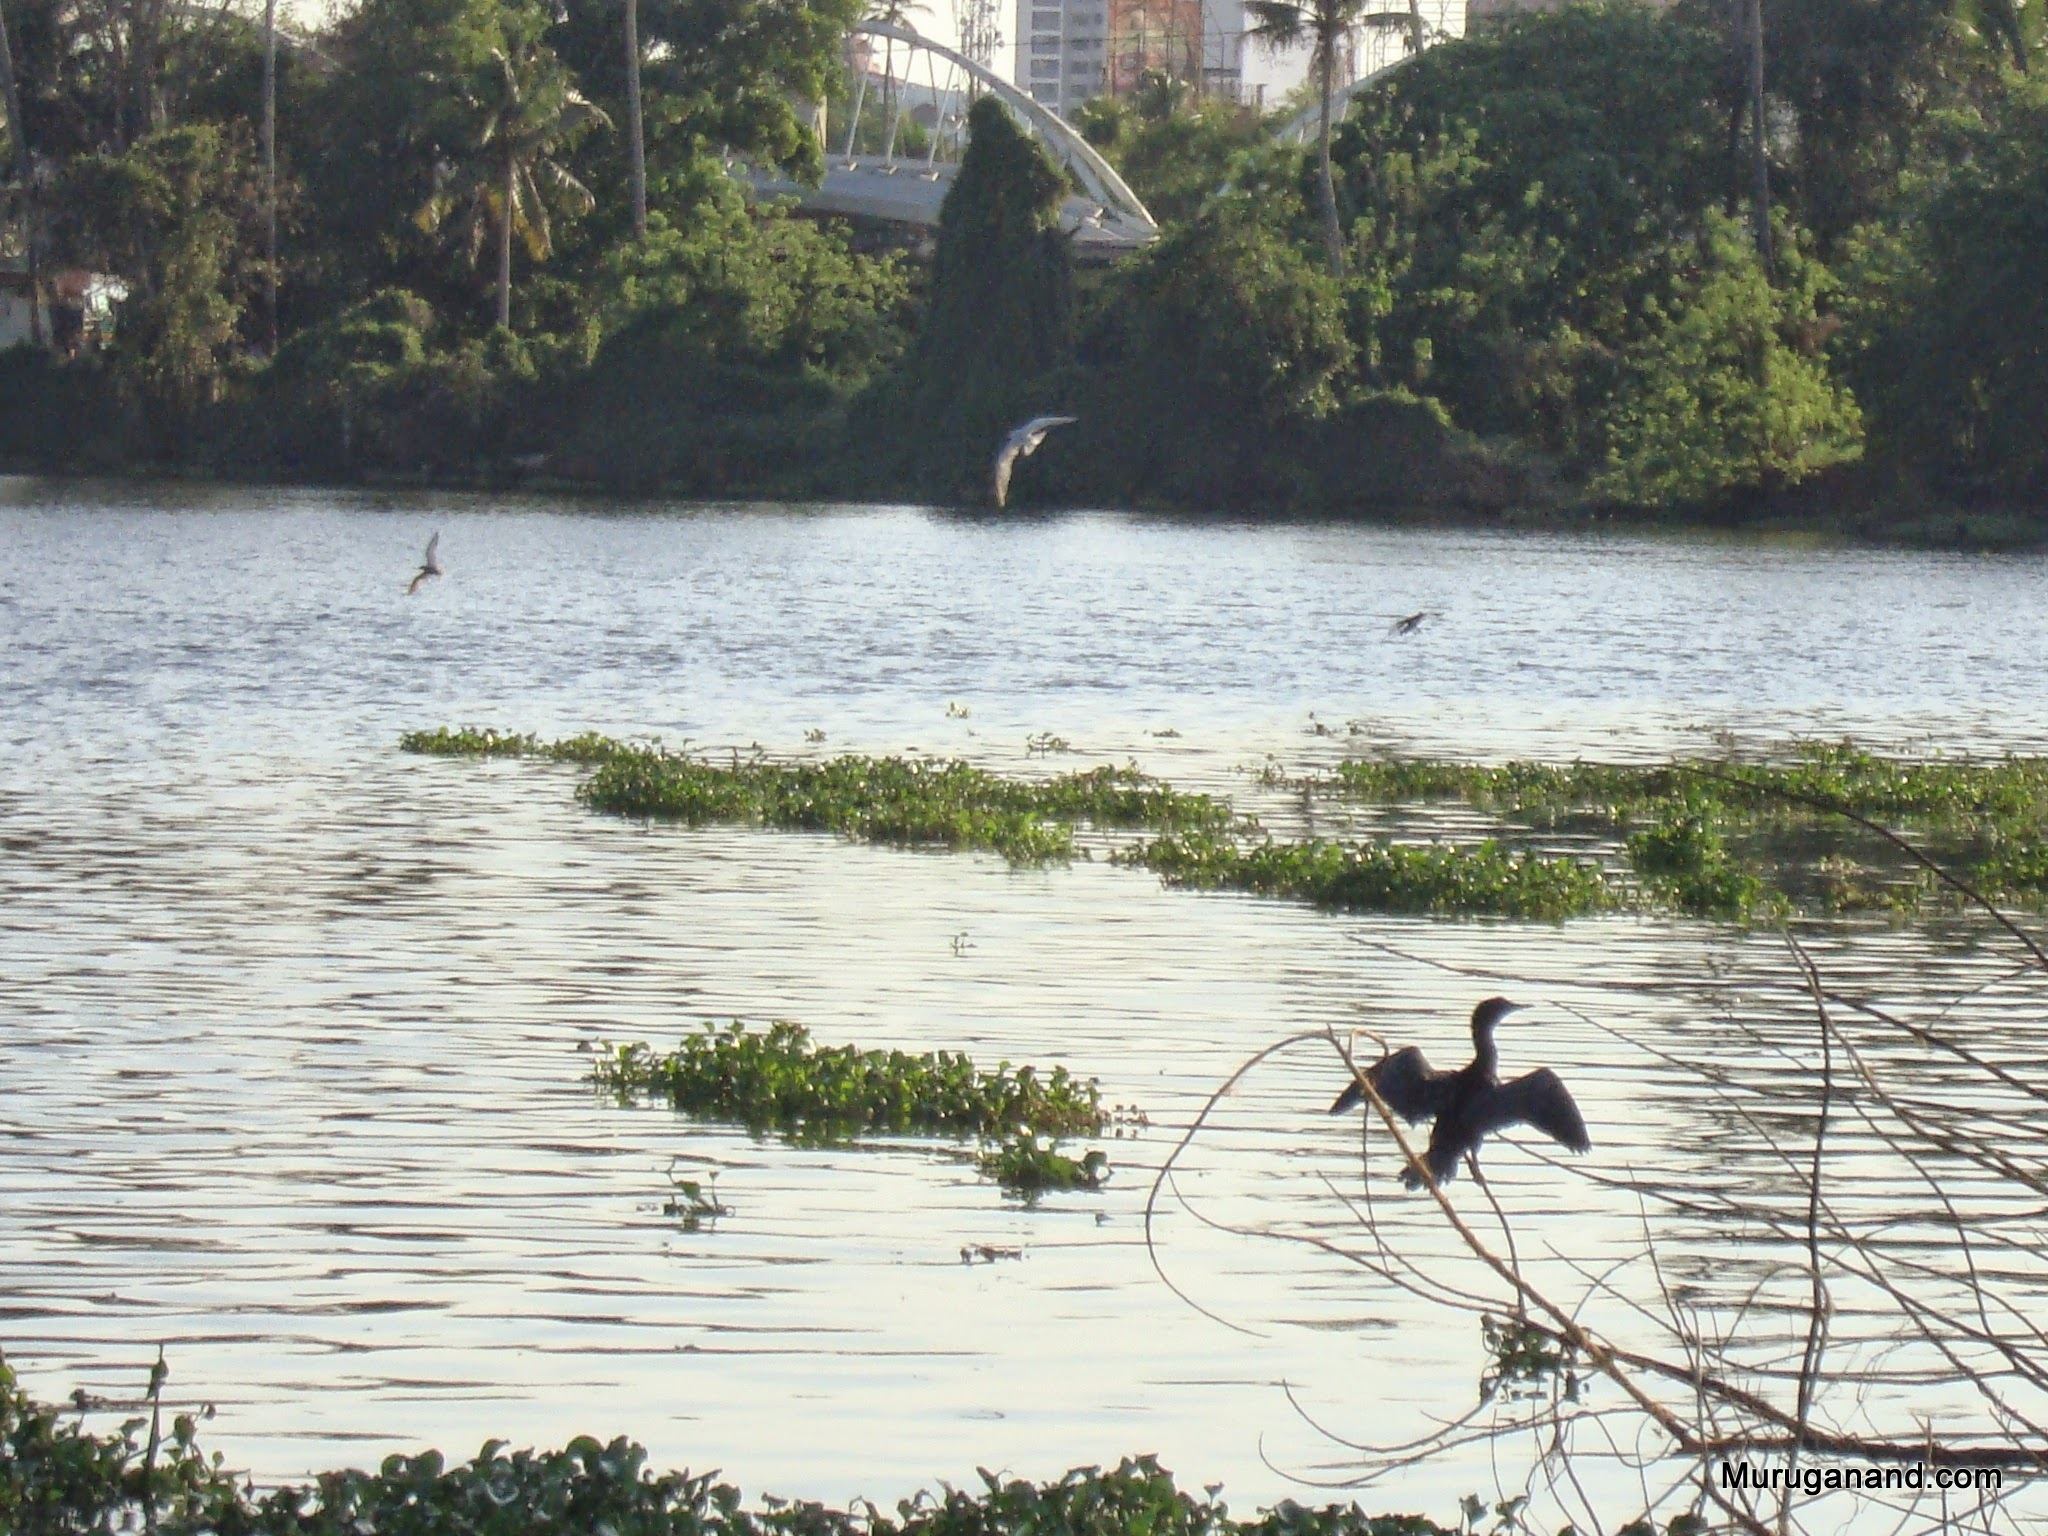 Floating plants on water- moves due to flow of backwaterCormorants busy fishing